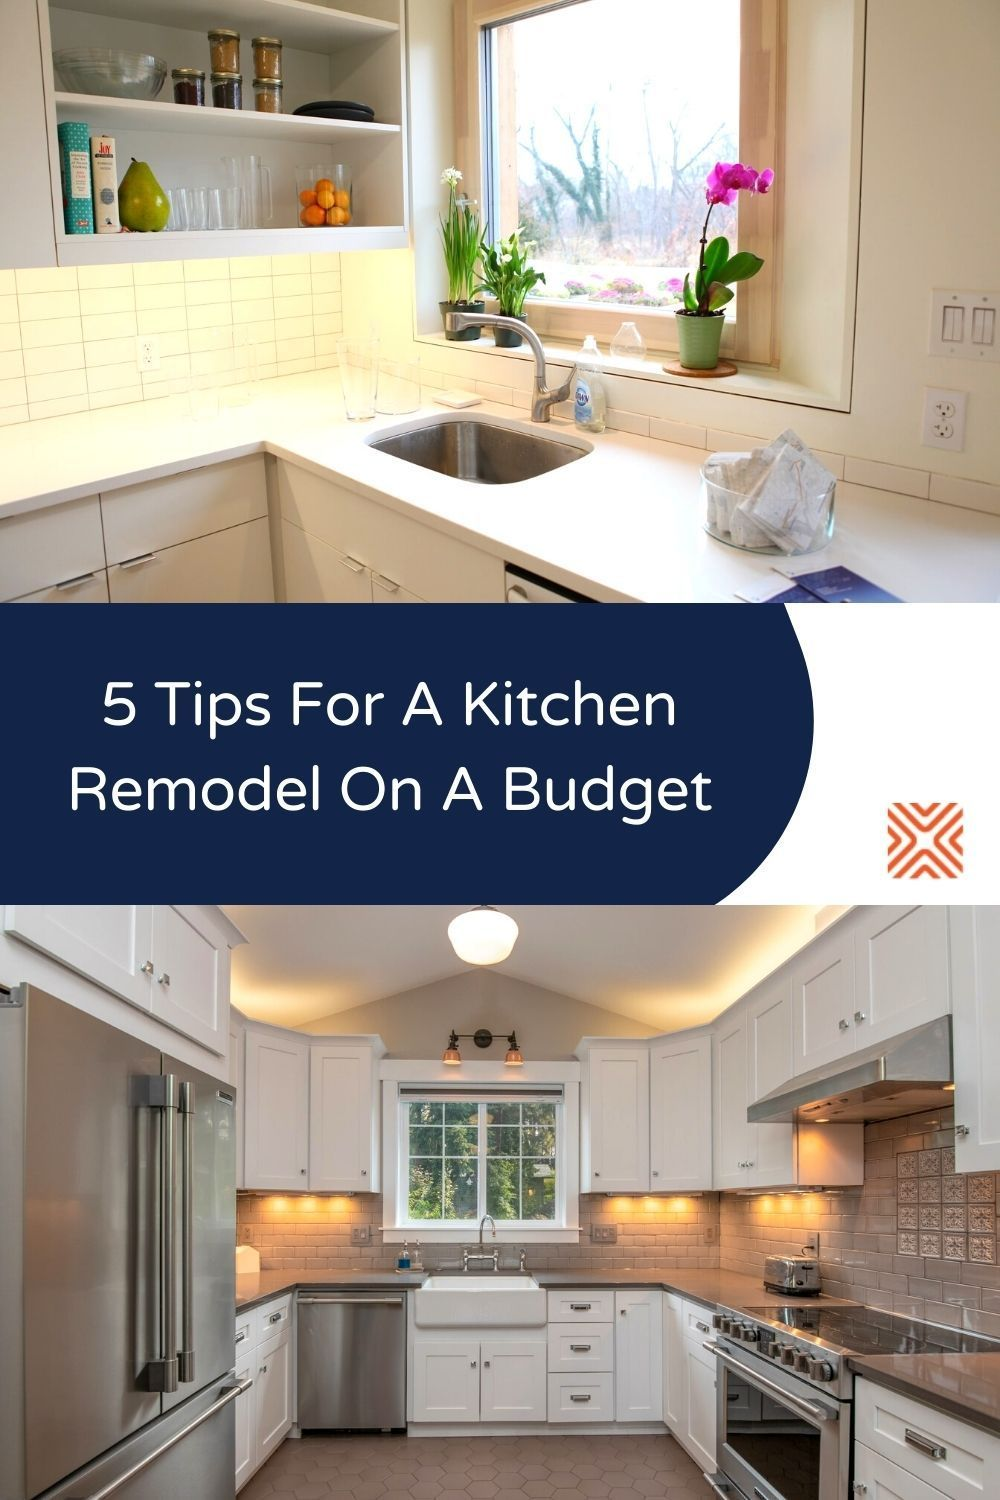 Kitchen Remodel On A Budget 5 Tips You Should Know Kukun Kitchen Remodel Kitchen Renovation Cost Kitchen Remodel Cost